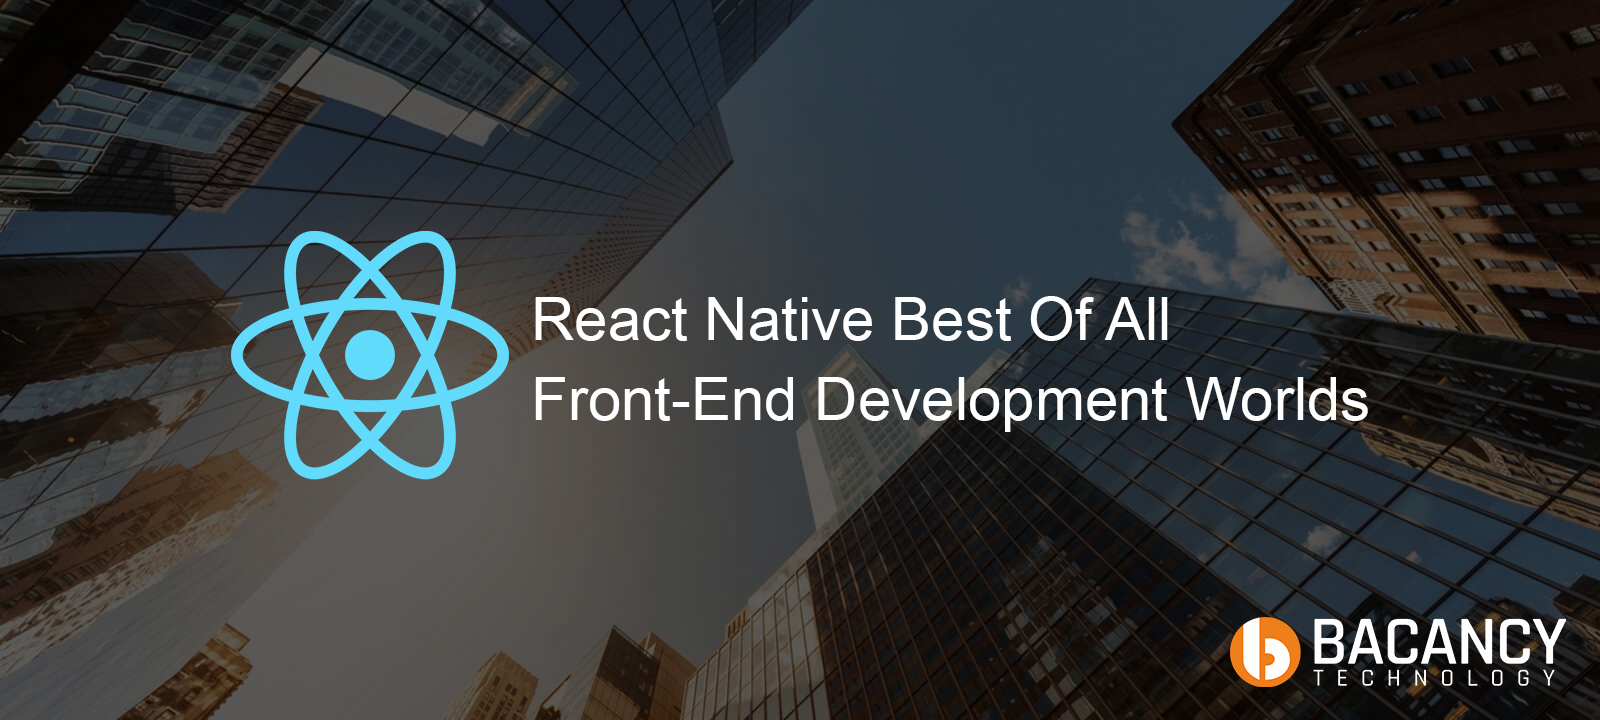 React Native: Best Of All Development Worlds That Includes Everything To Build Fantastic Front-End Application